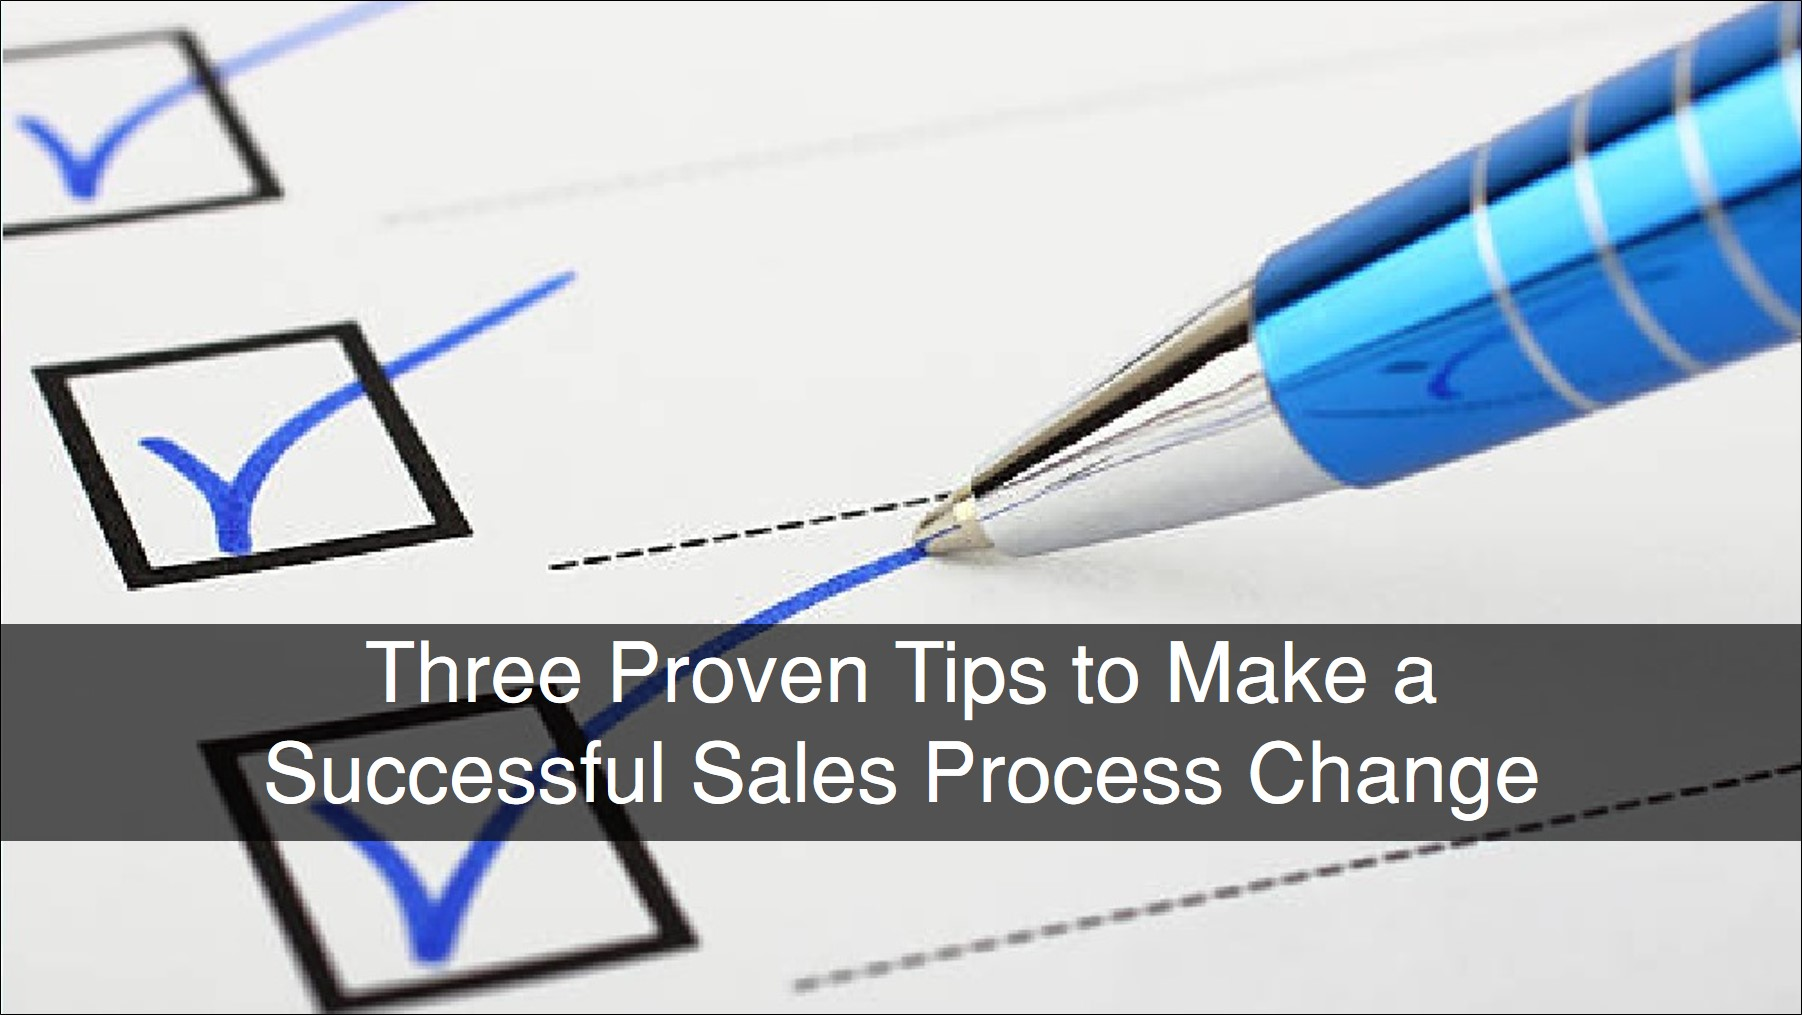 Blog 20190612 - 3 Elements of Sales Process Change